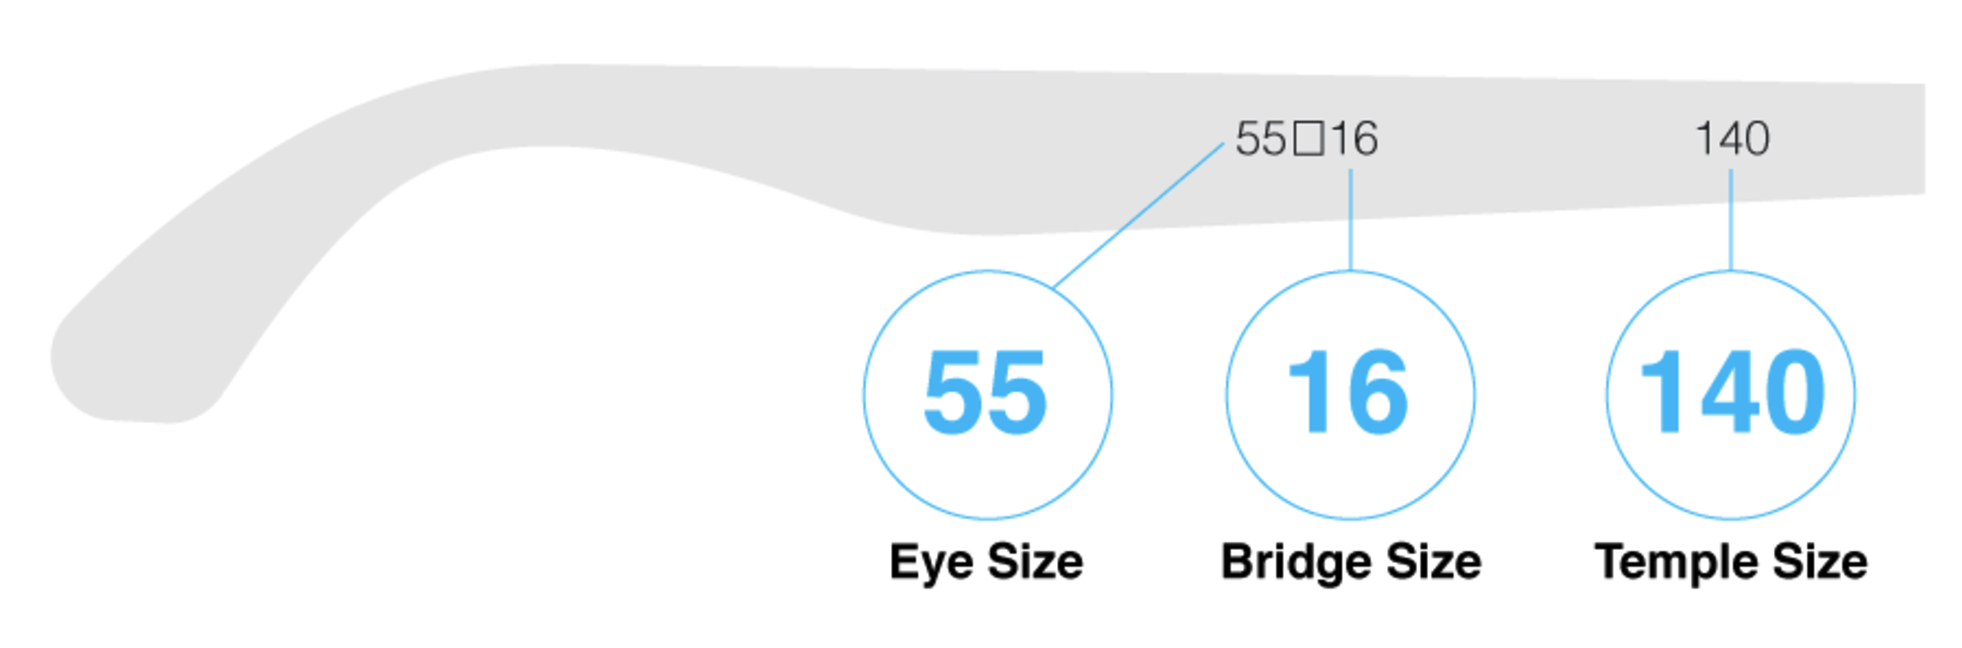 Temple size of sunglasses or glasses (Eye Size, Bridge Size, Temple Size)